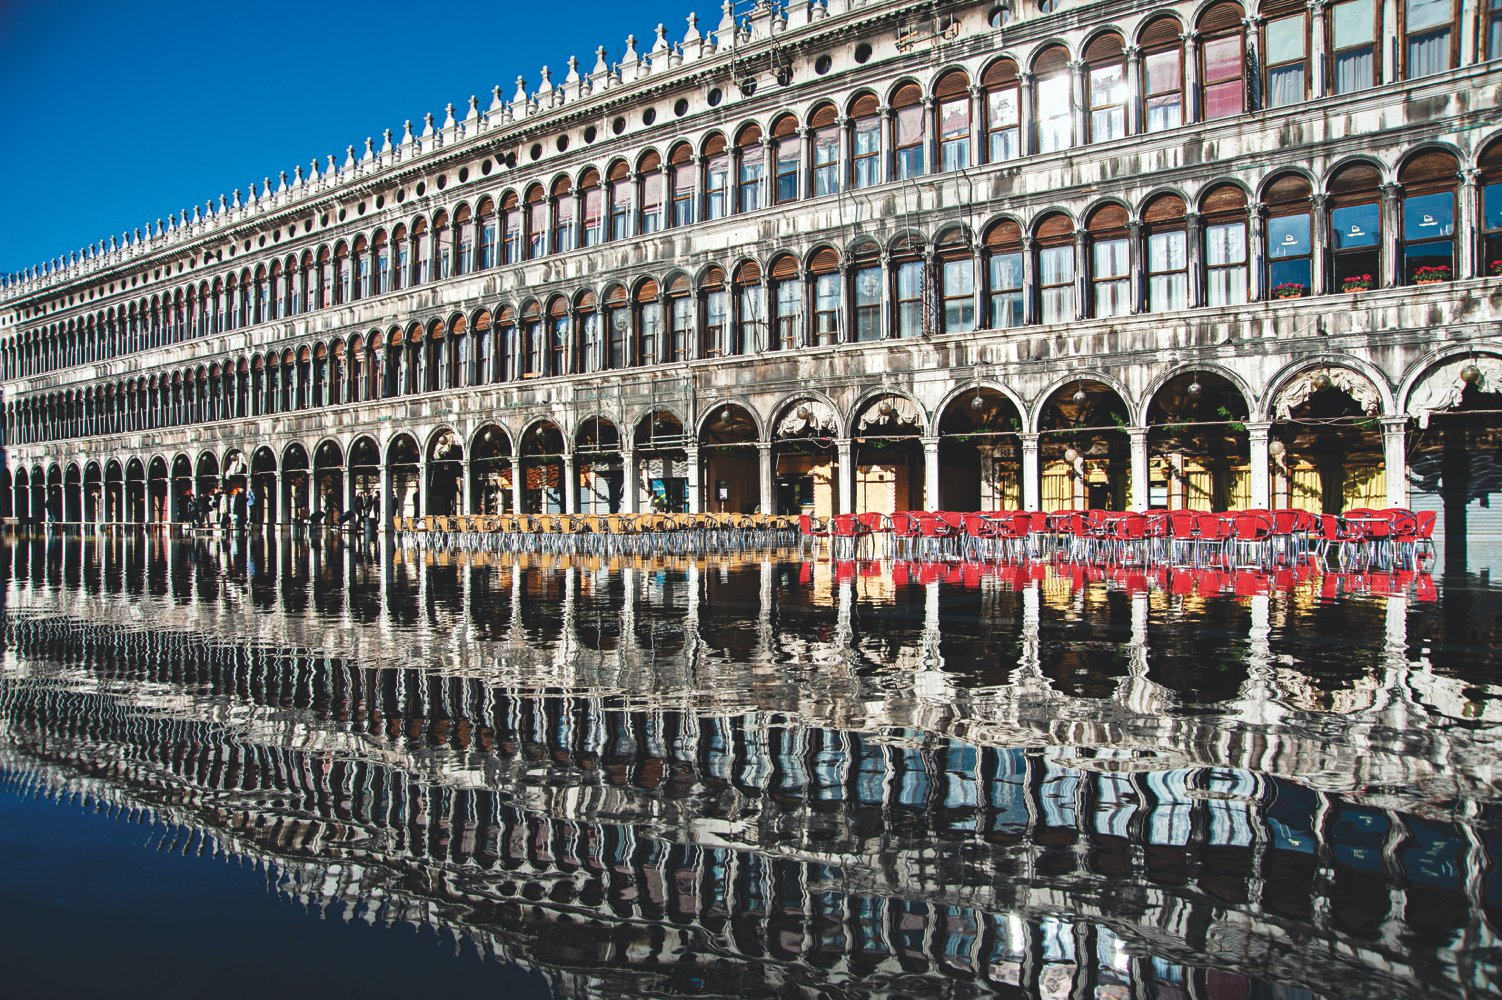 /upload/iblock/a79/a798d3084d9e992a19dee462968739d7.jpg